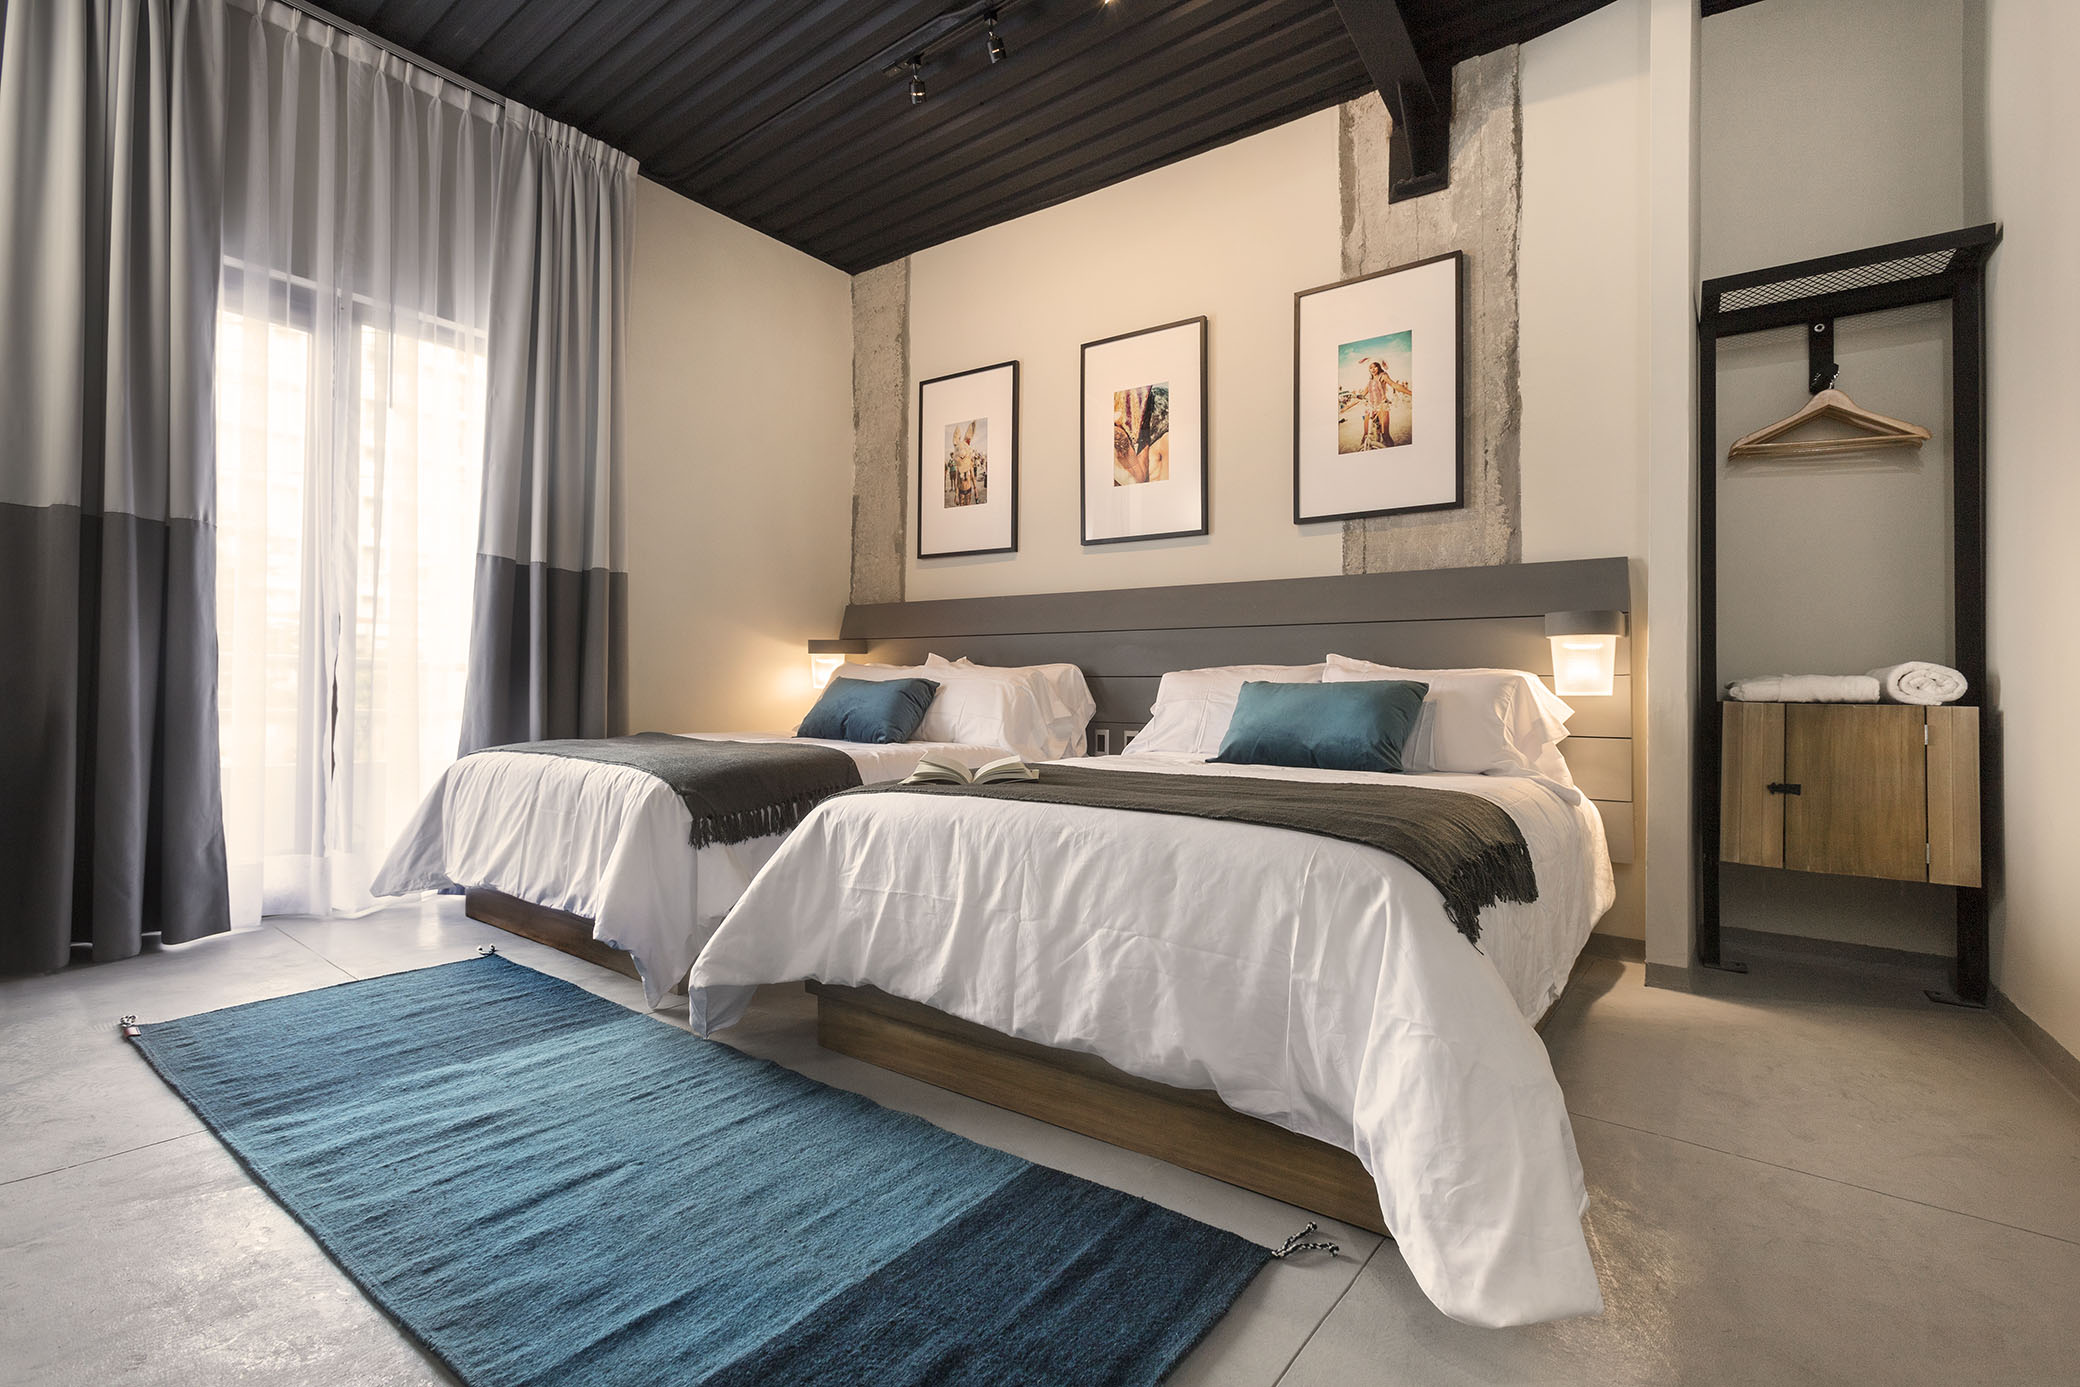 Stay: Hotel in Zapopan, JAL MX